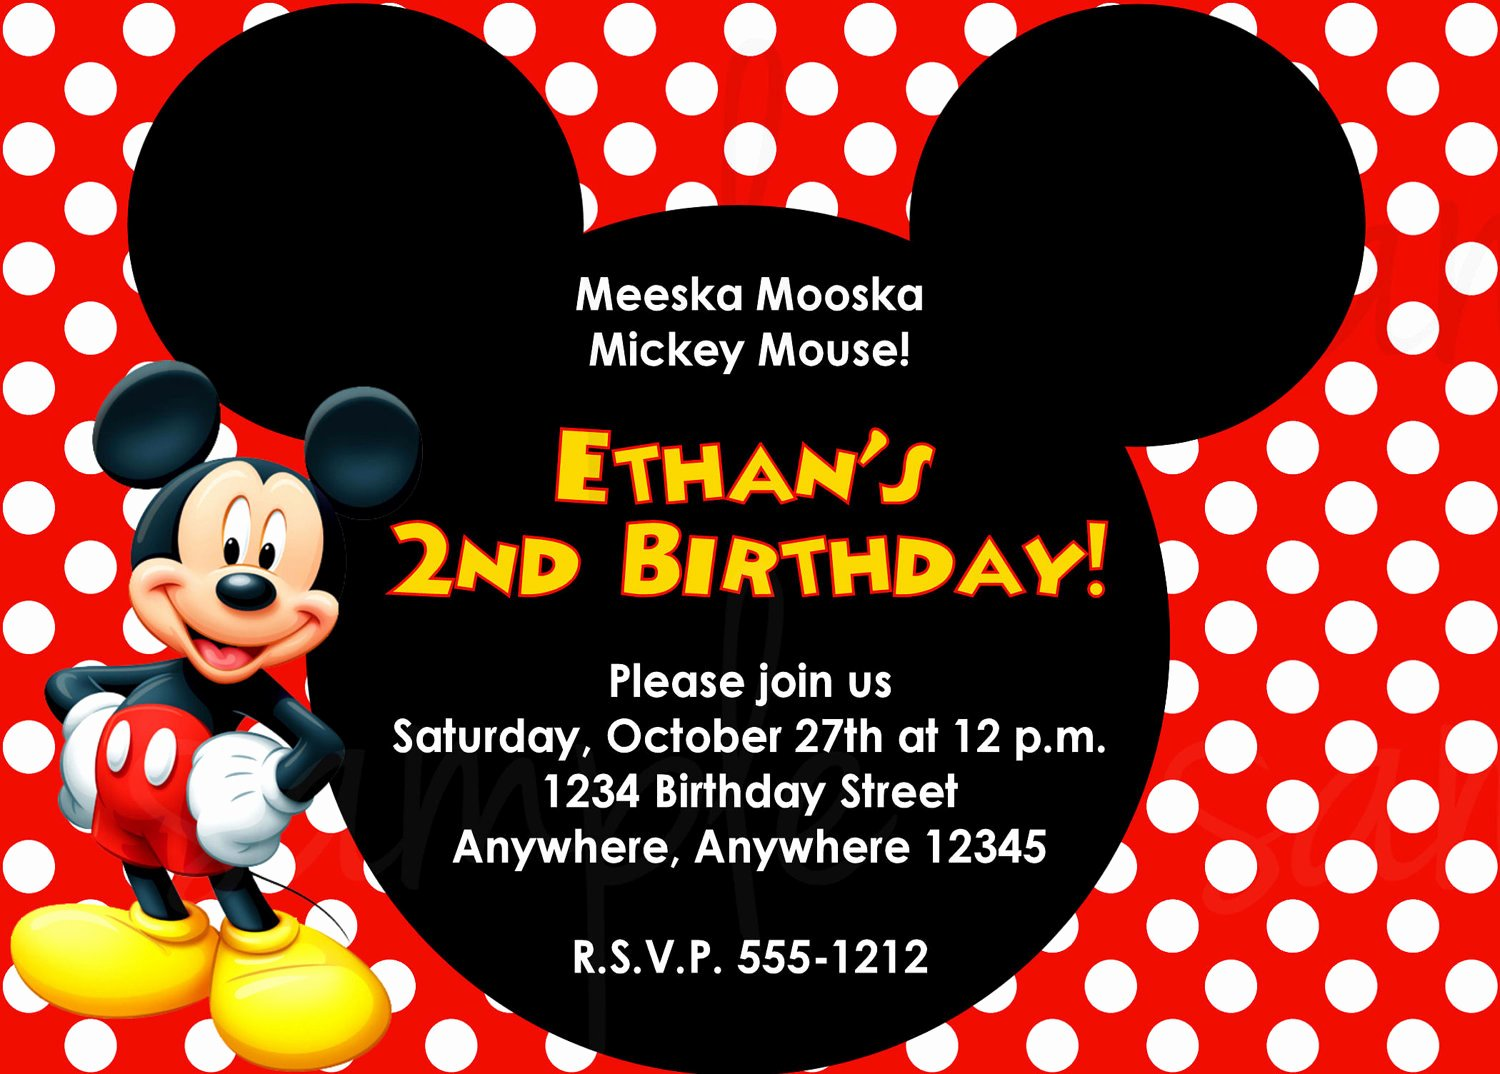 Mickey Mouse Birthday Invitations Template New Mickey Mouse Birthday Invitation